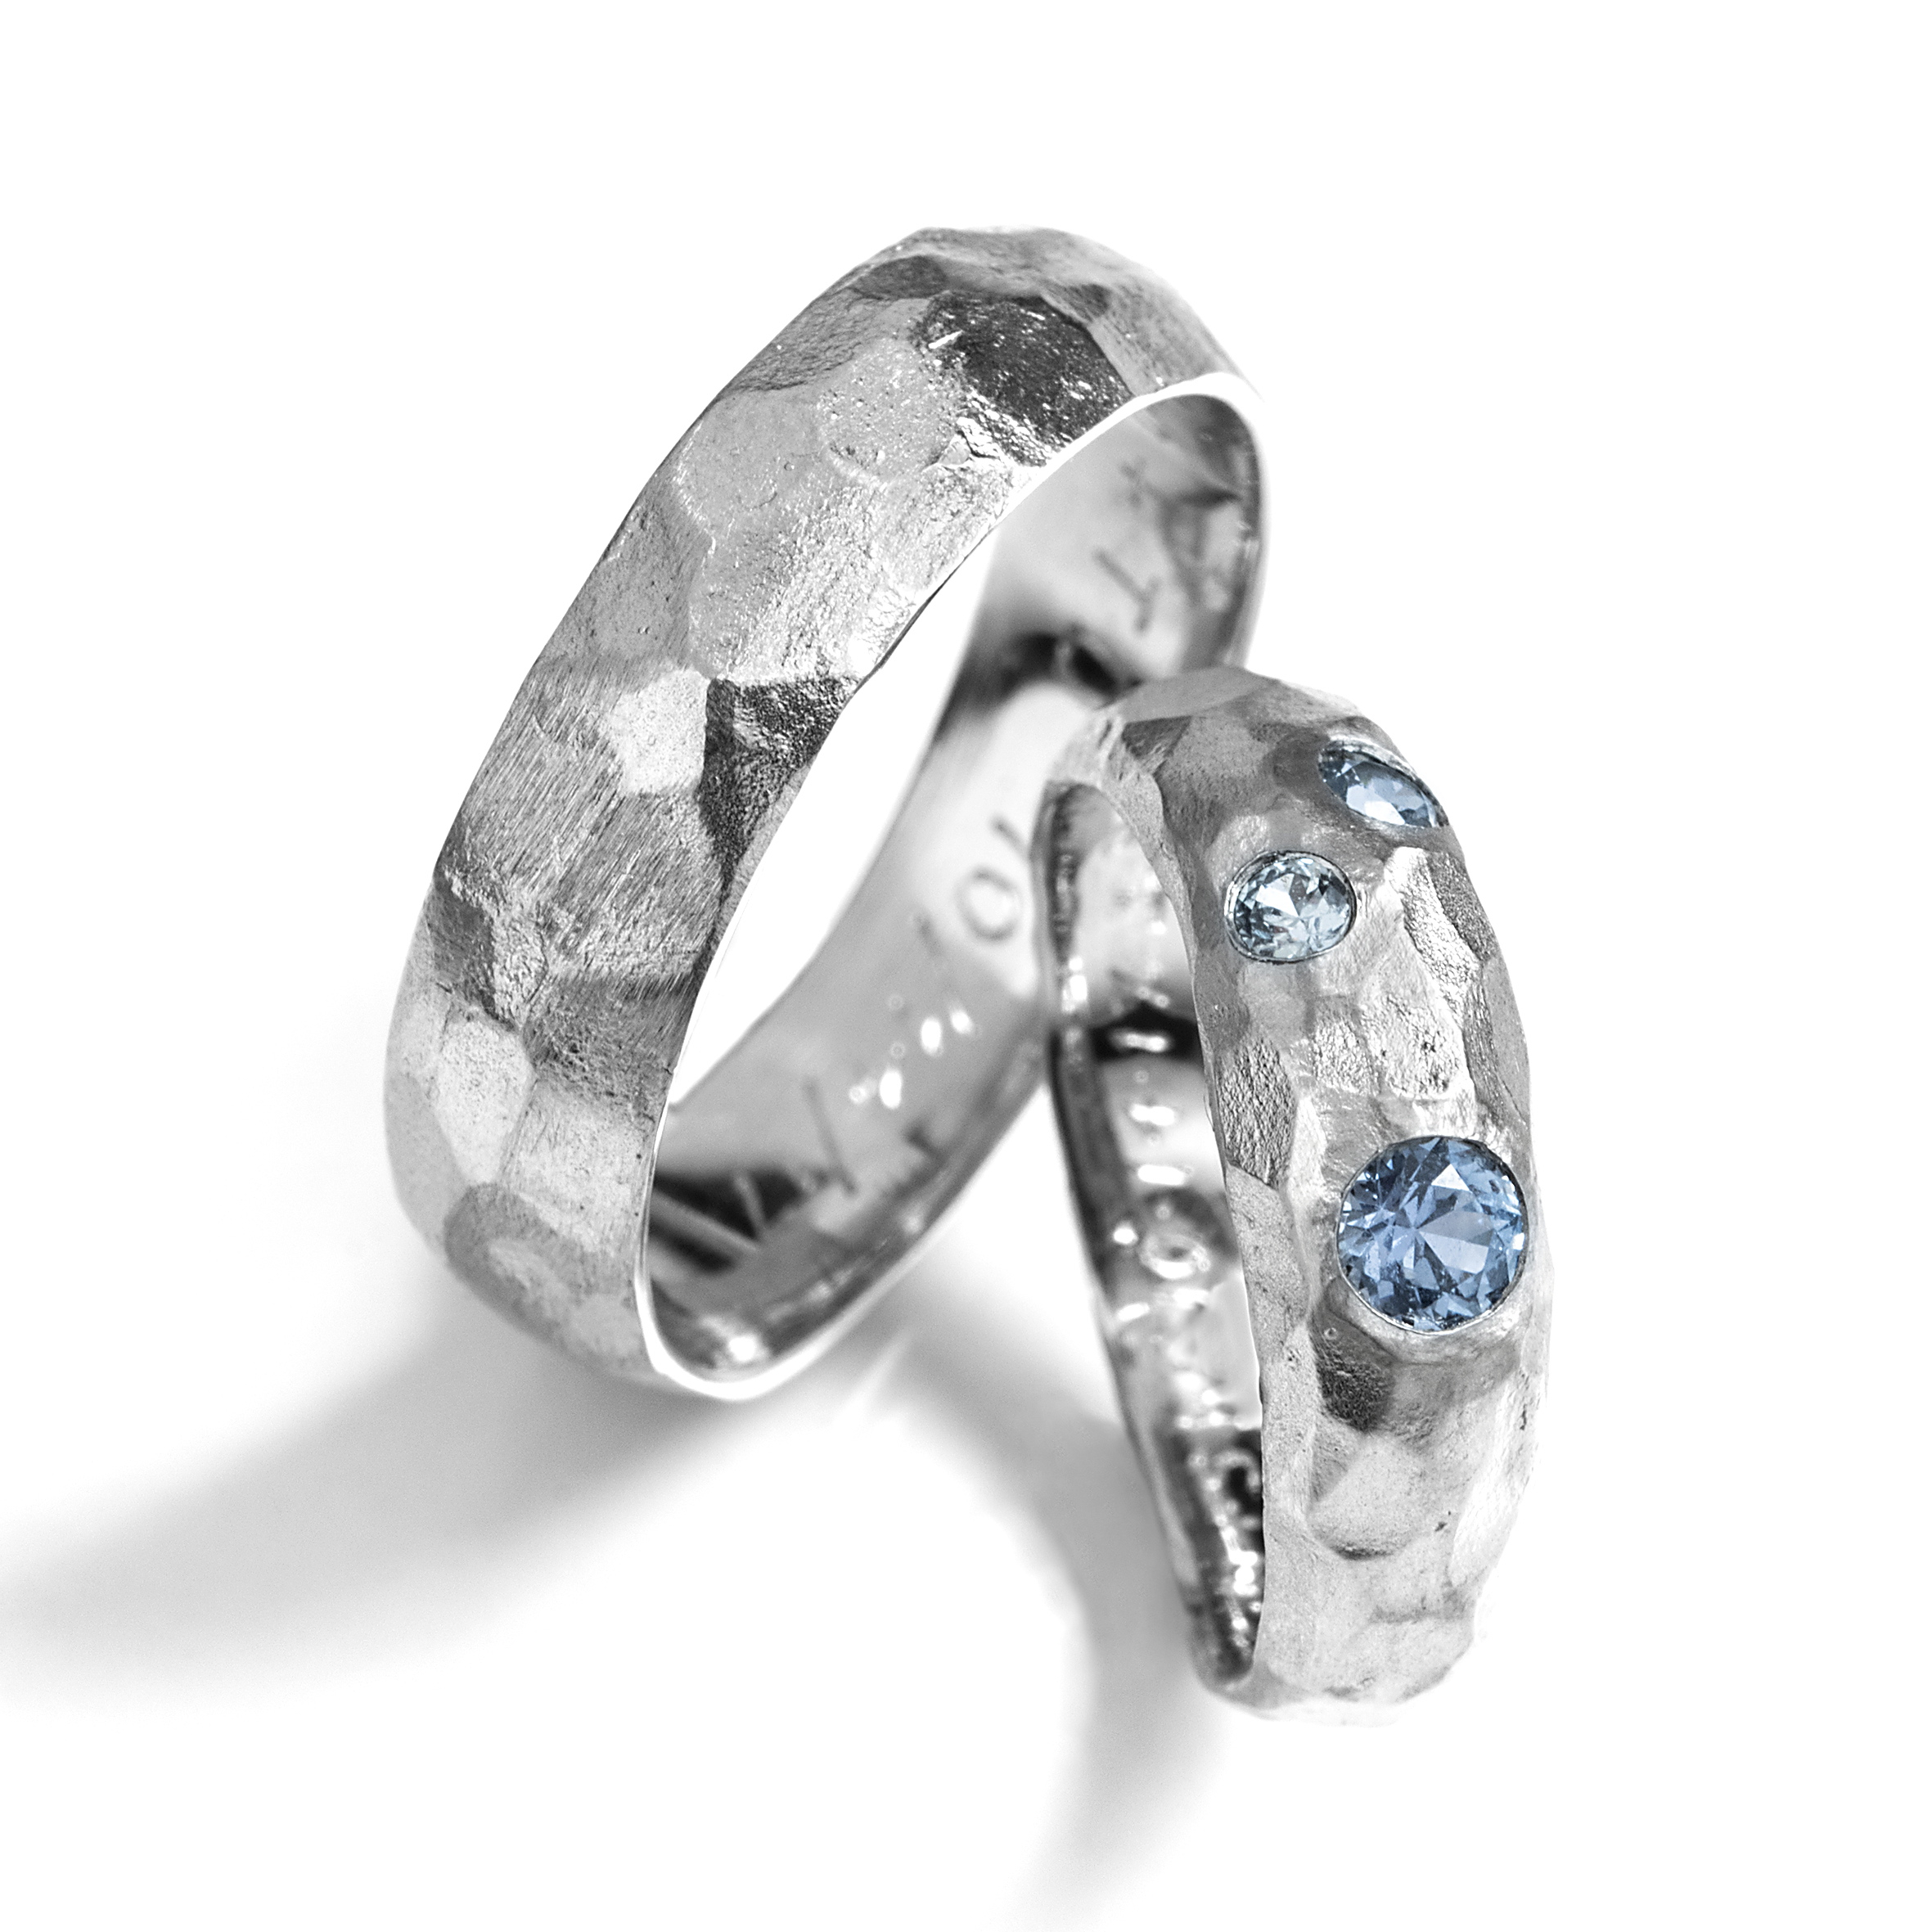 Chisled Wedding Bands.jpg